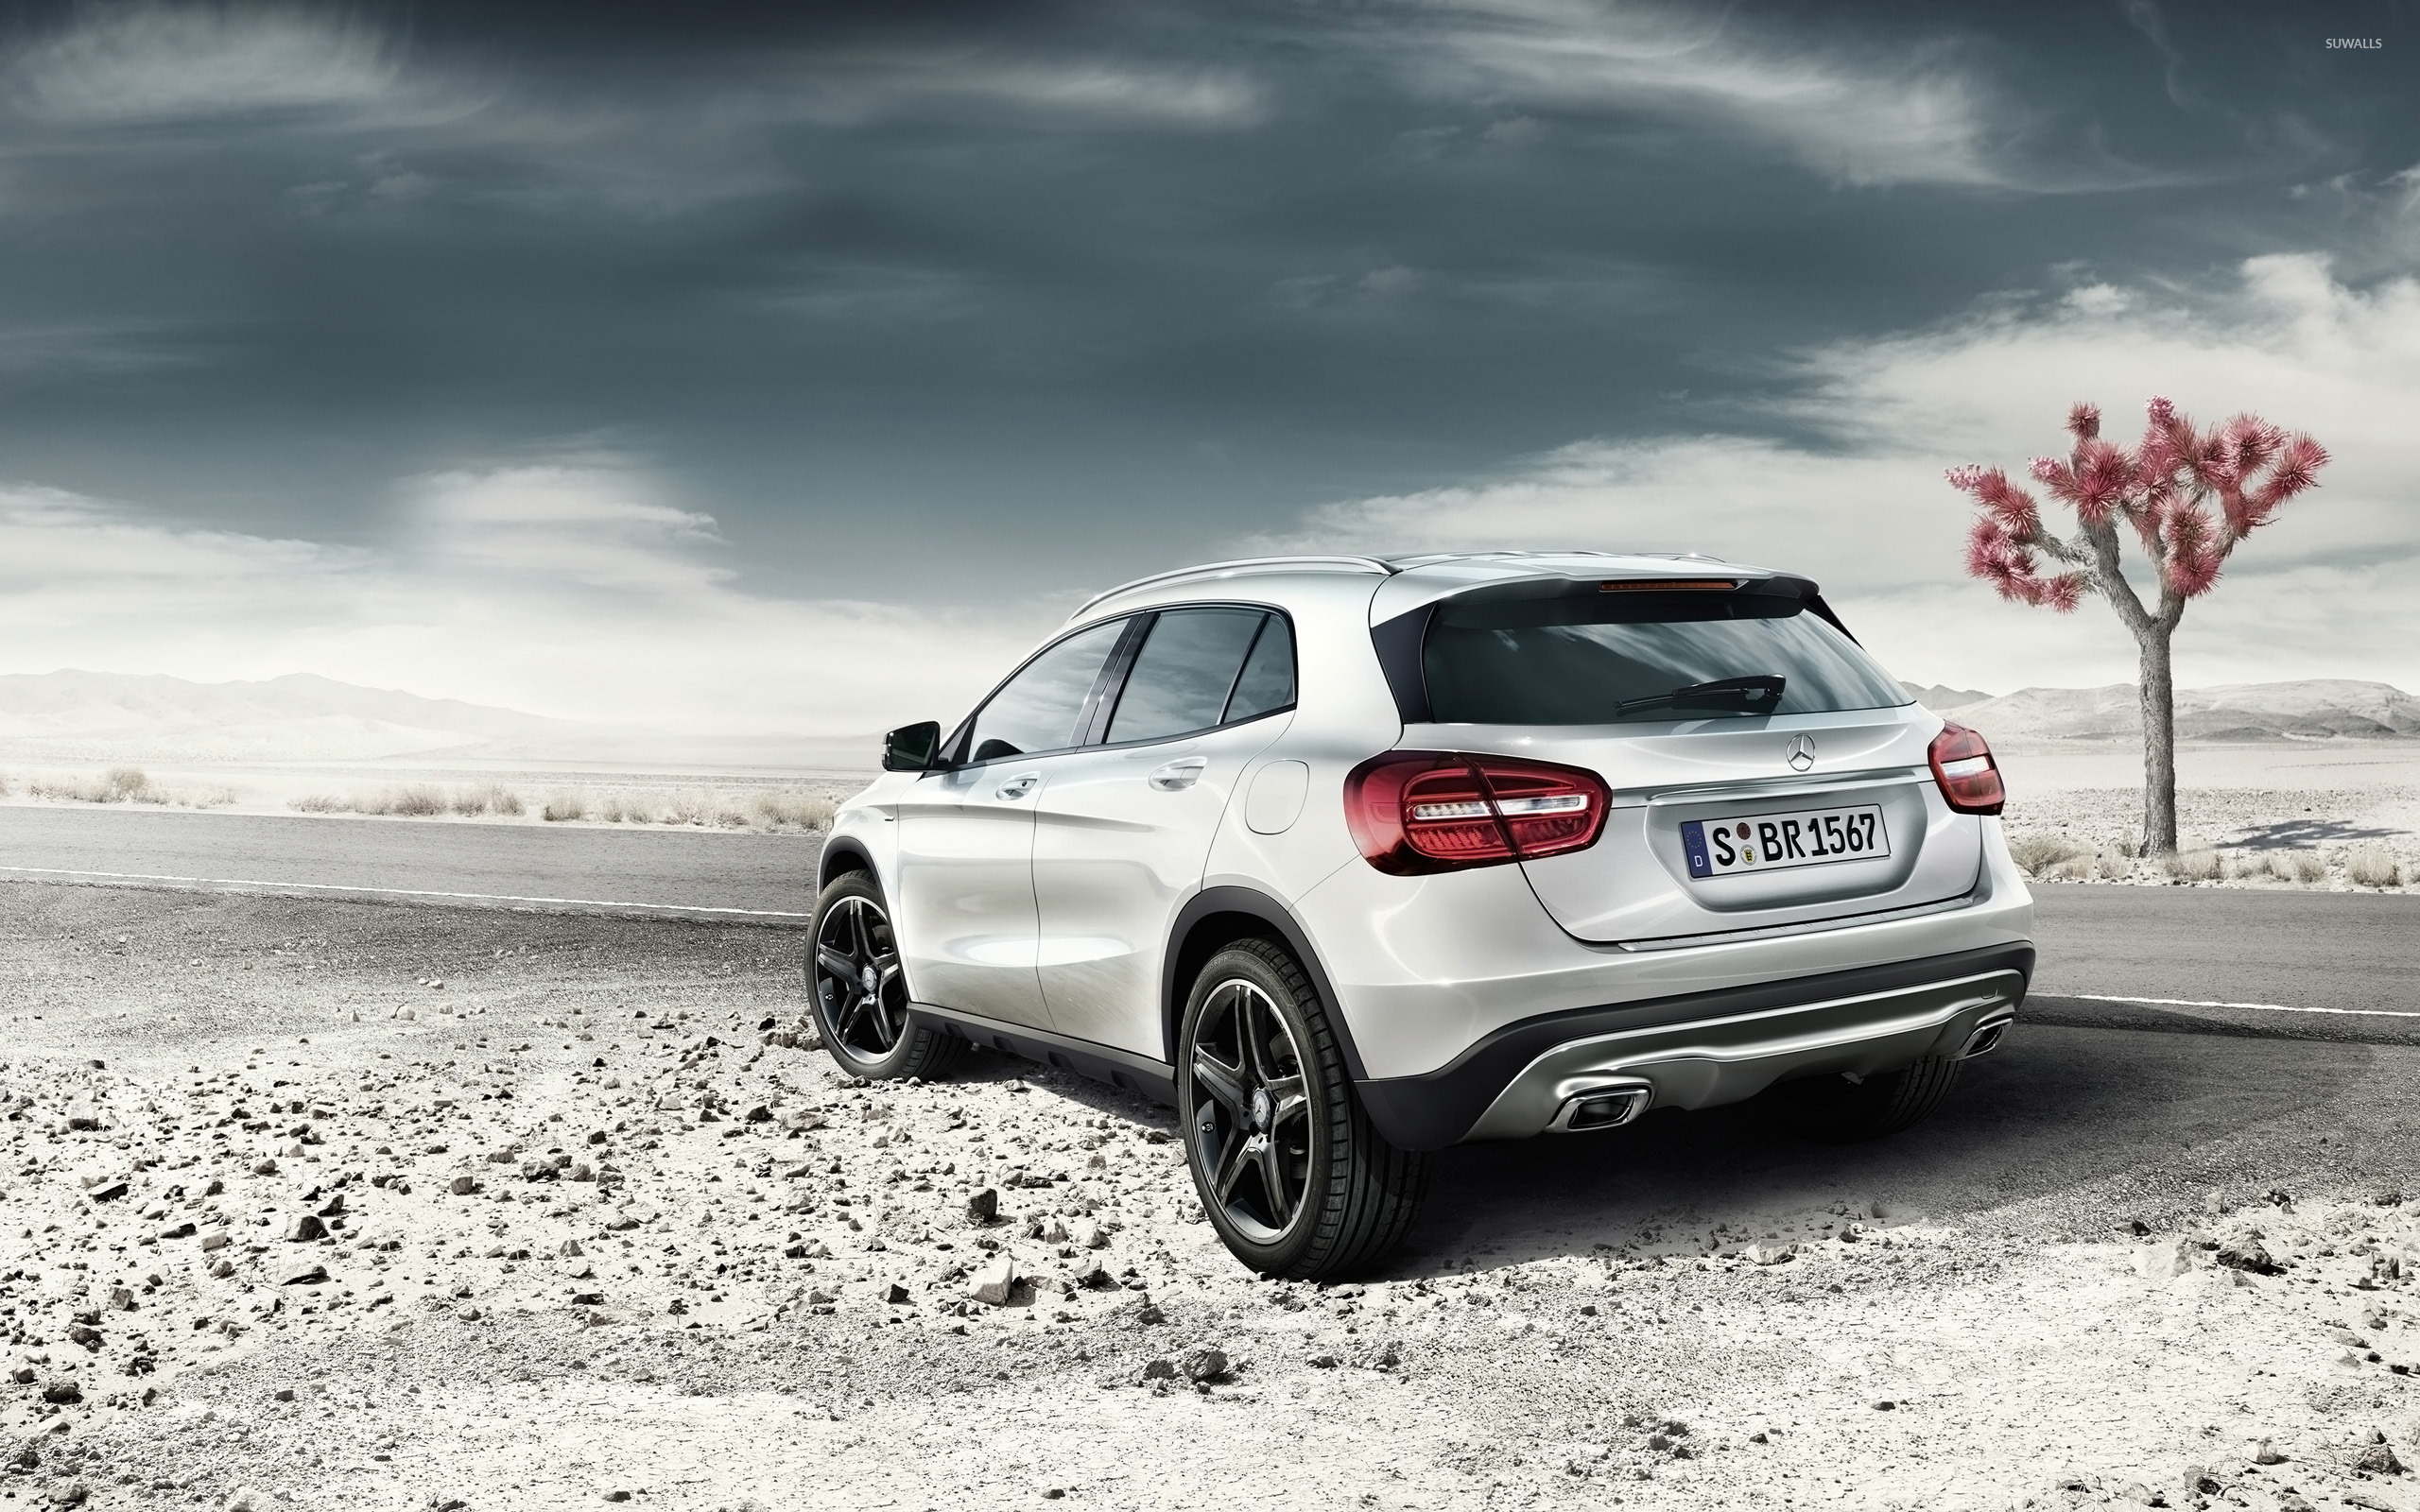 2014 Mercedes-Benz GLA [2] wallpaper - Car wallpapers - #26203